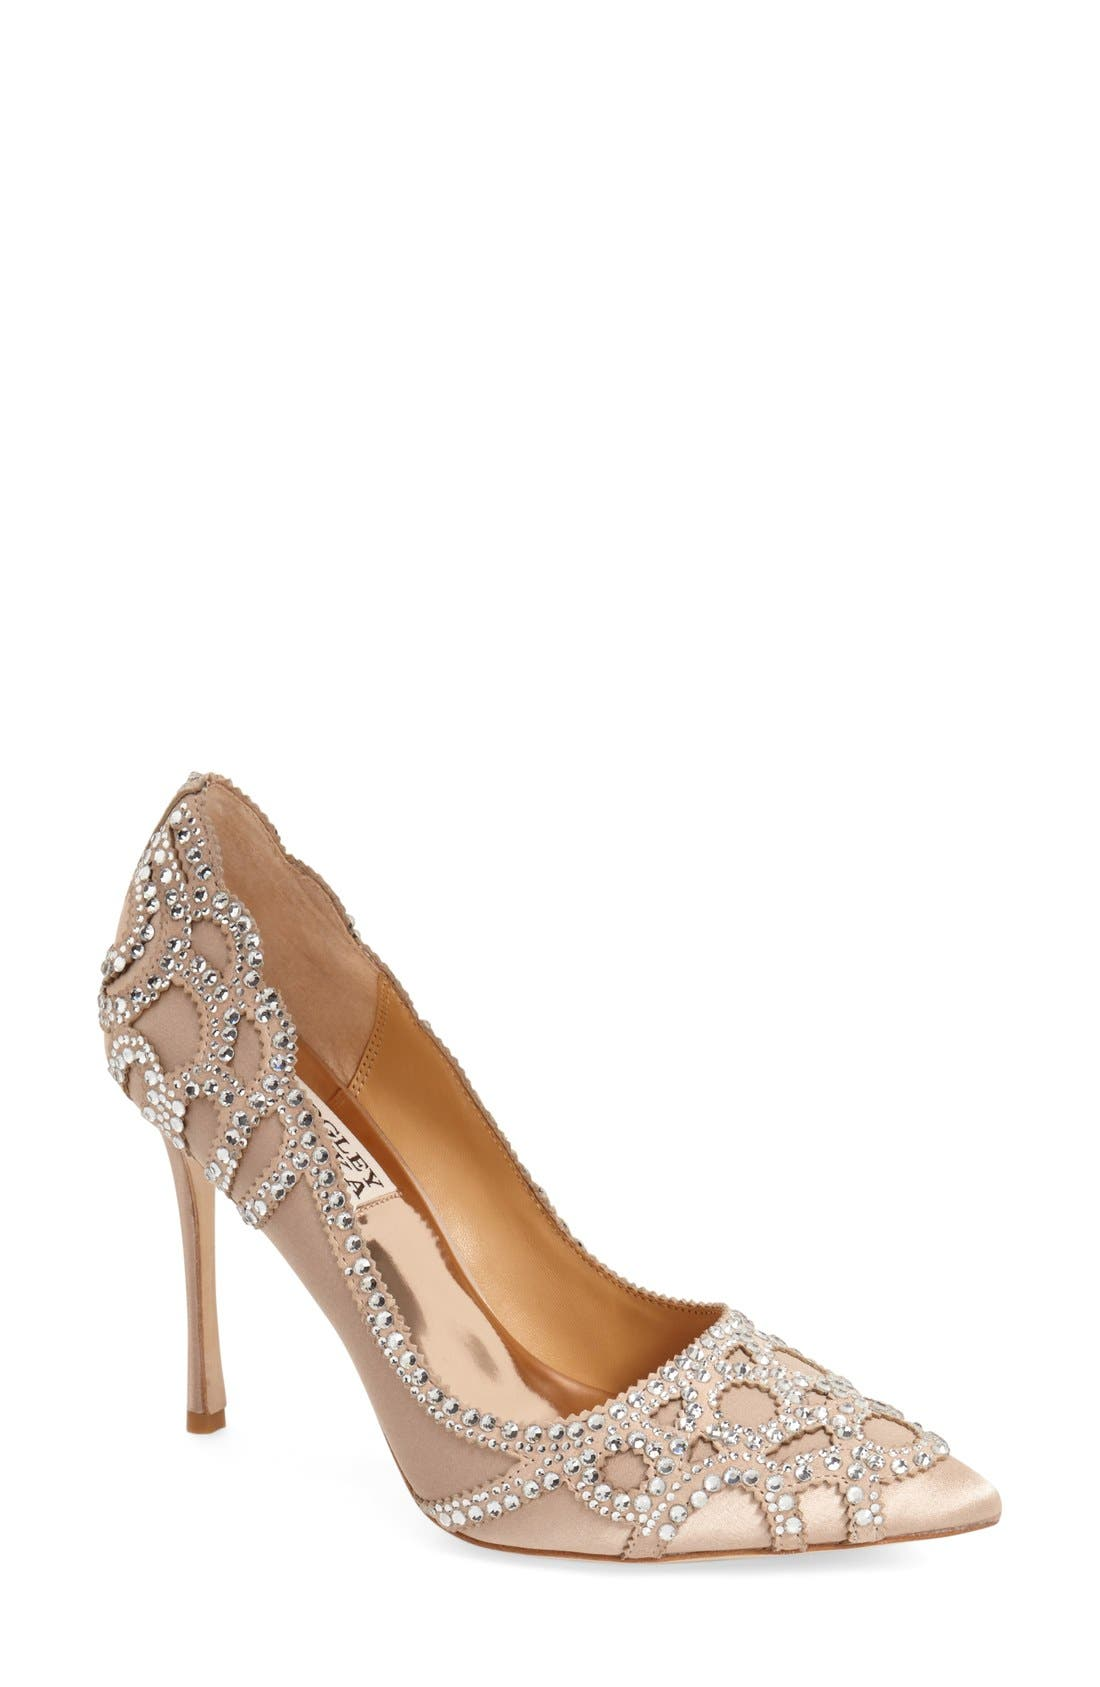 Badgley Mischka 'Rouge' Pointy Toe Pump,                         Main,                         color, LATTE SATIN